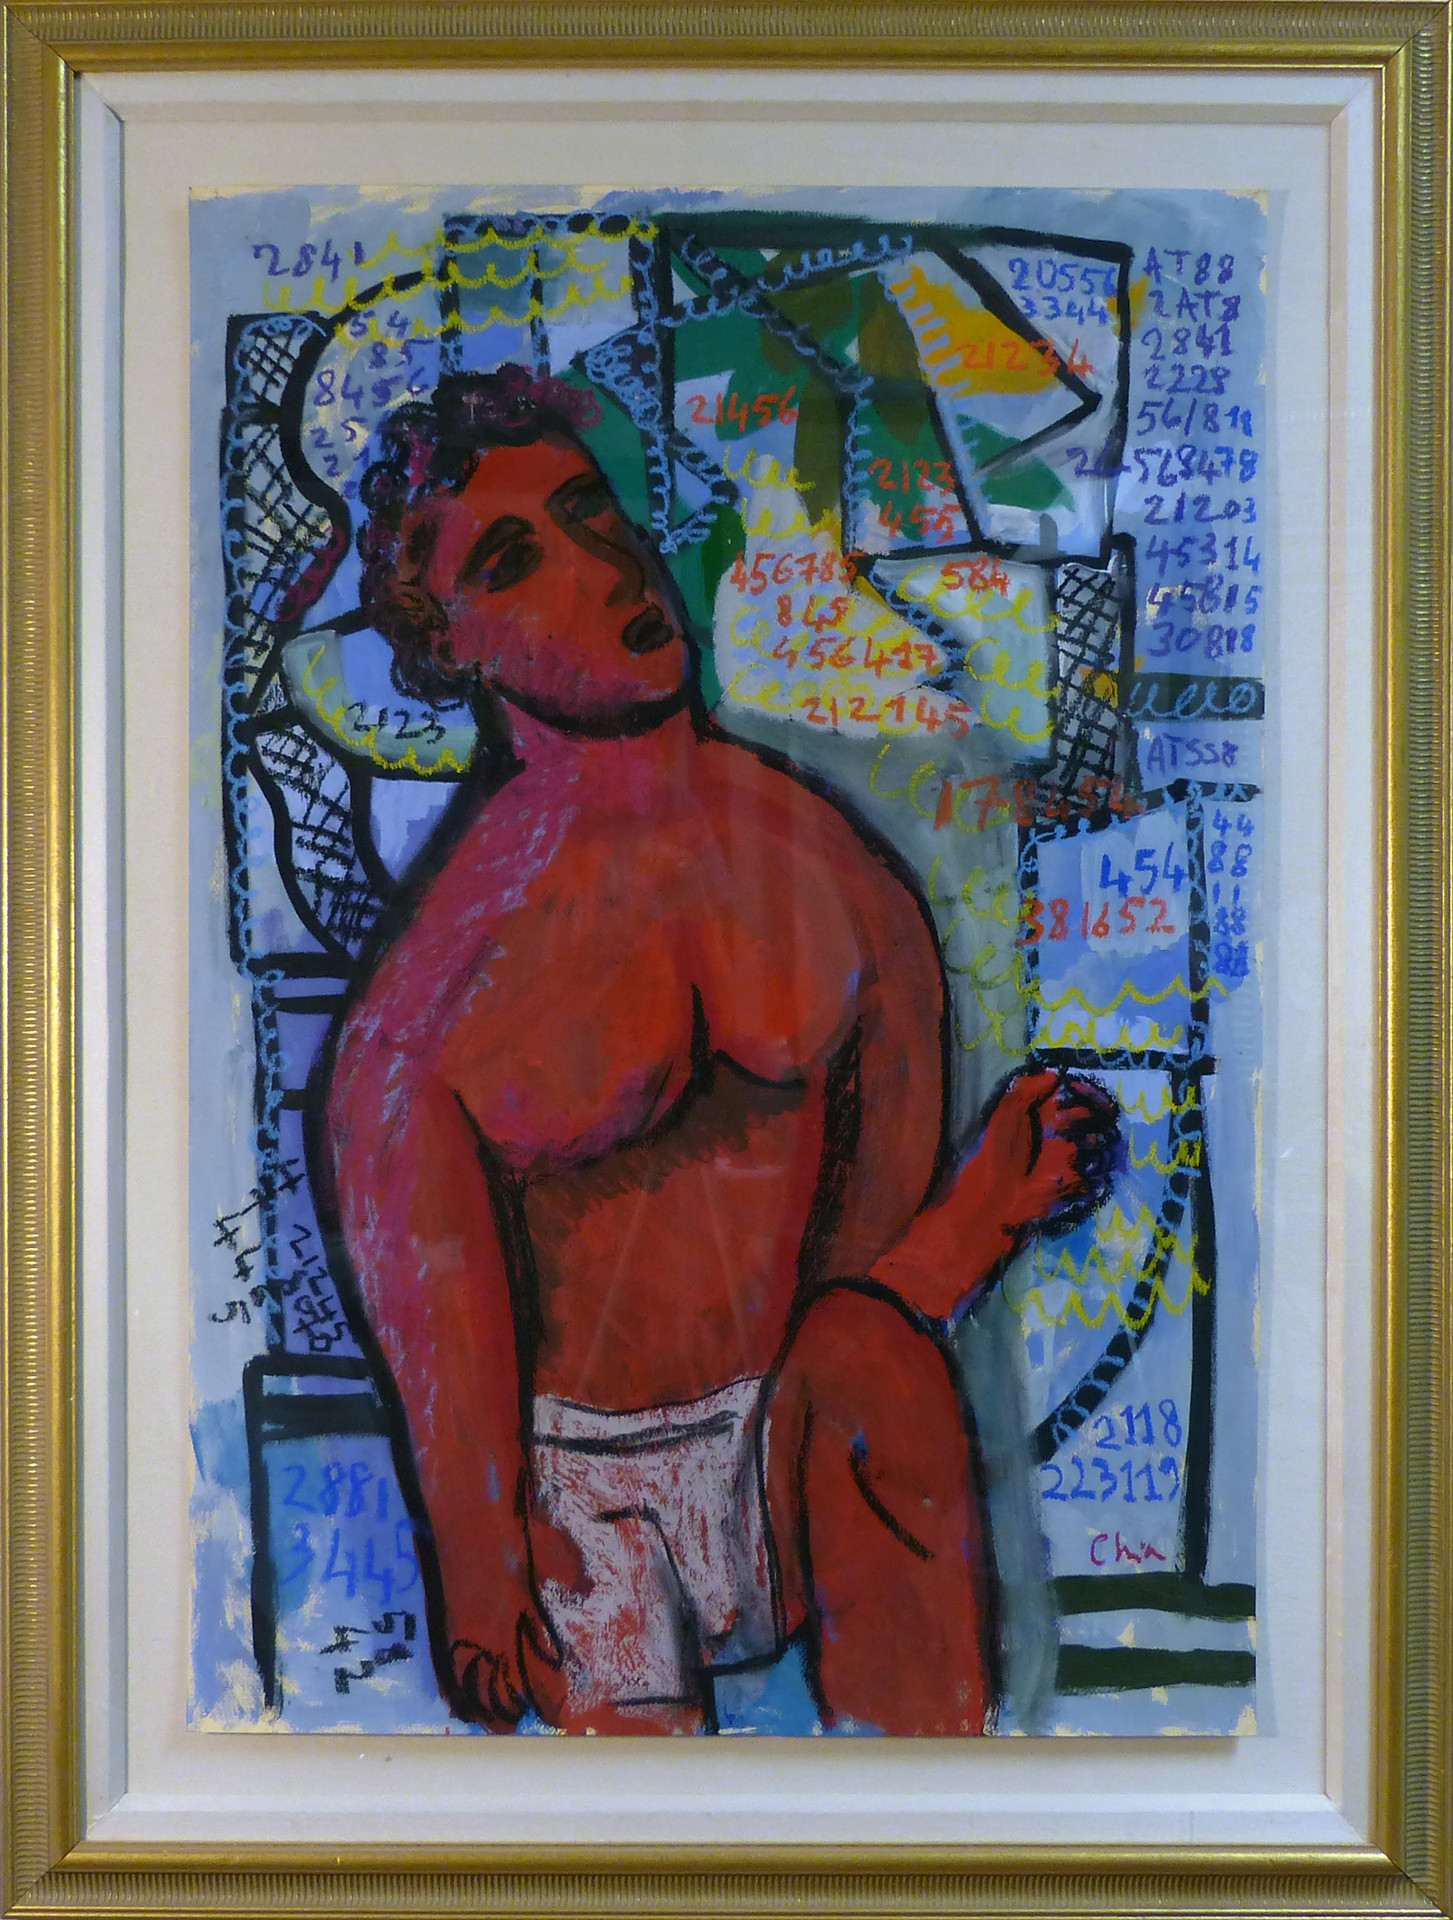 Red Man 223119 Gouache on paper 39 x 28 in. 49 x 38 in. framed Handsigned lower right